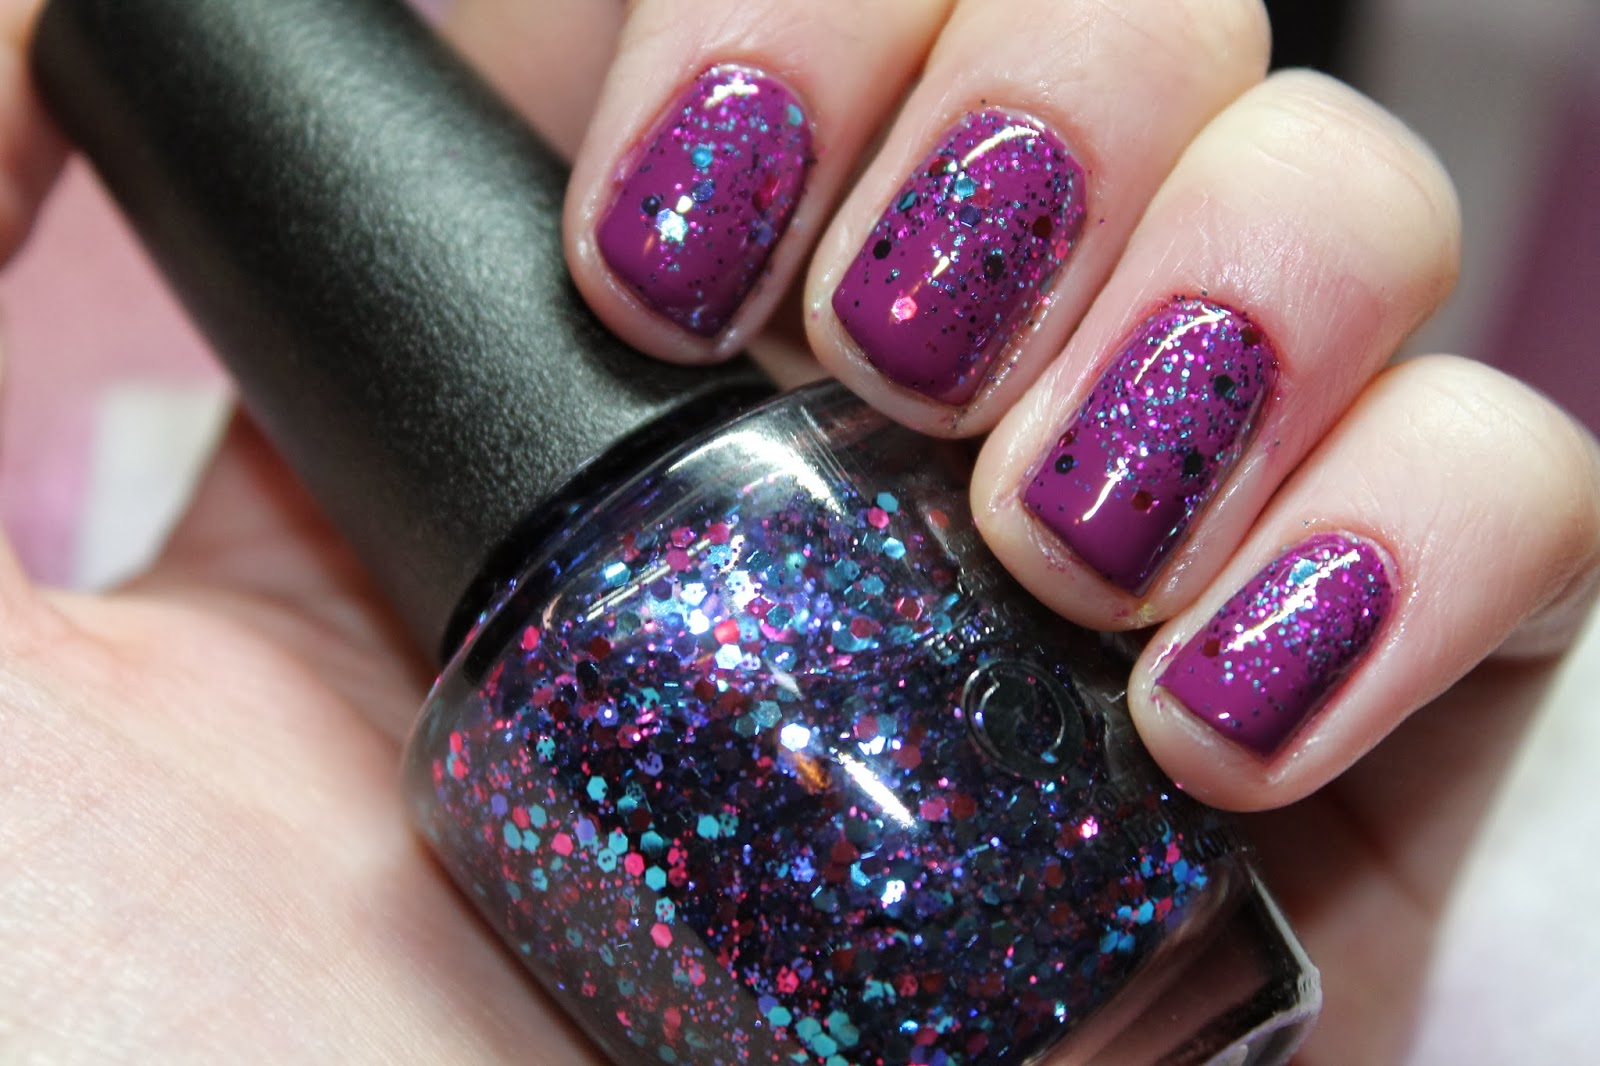 Nails Inc - Sinful Colors - OPI - Purple Glitter Gradient Nail Art